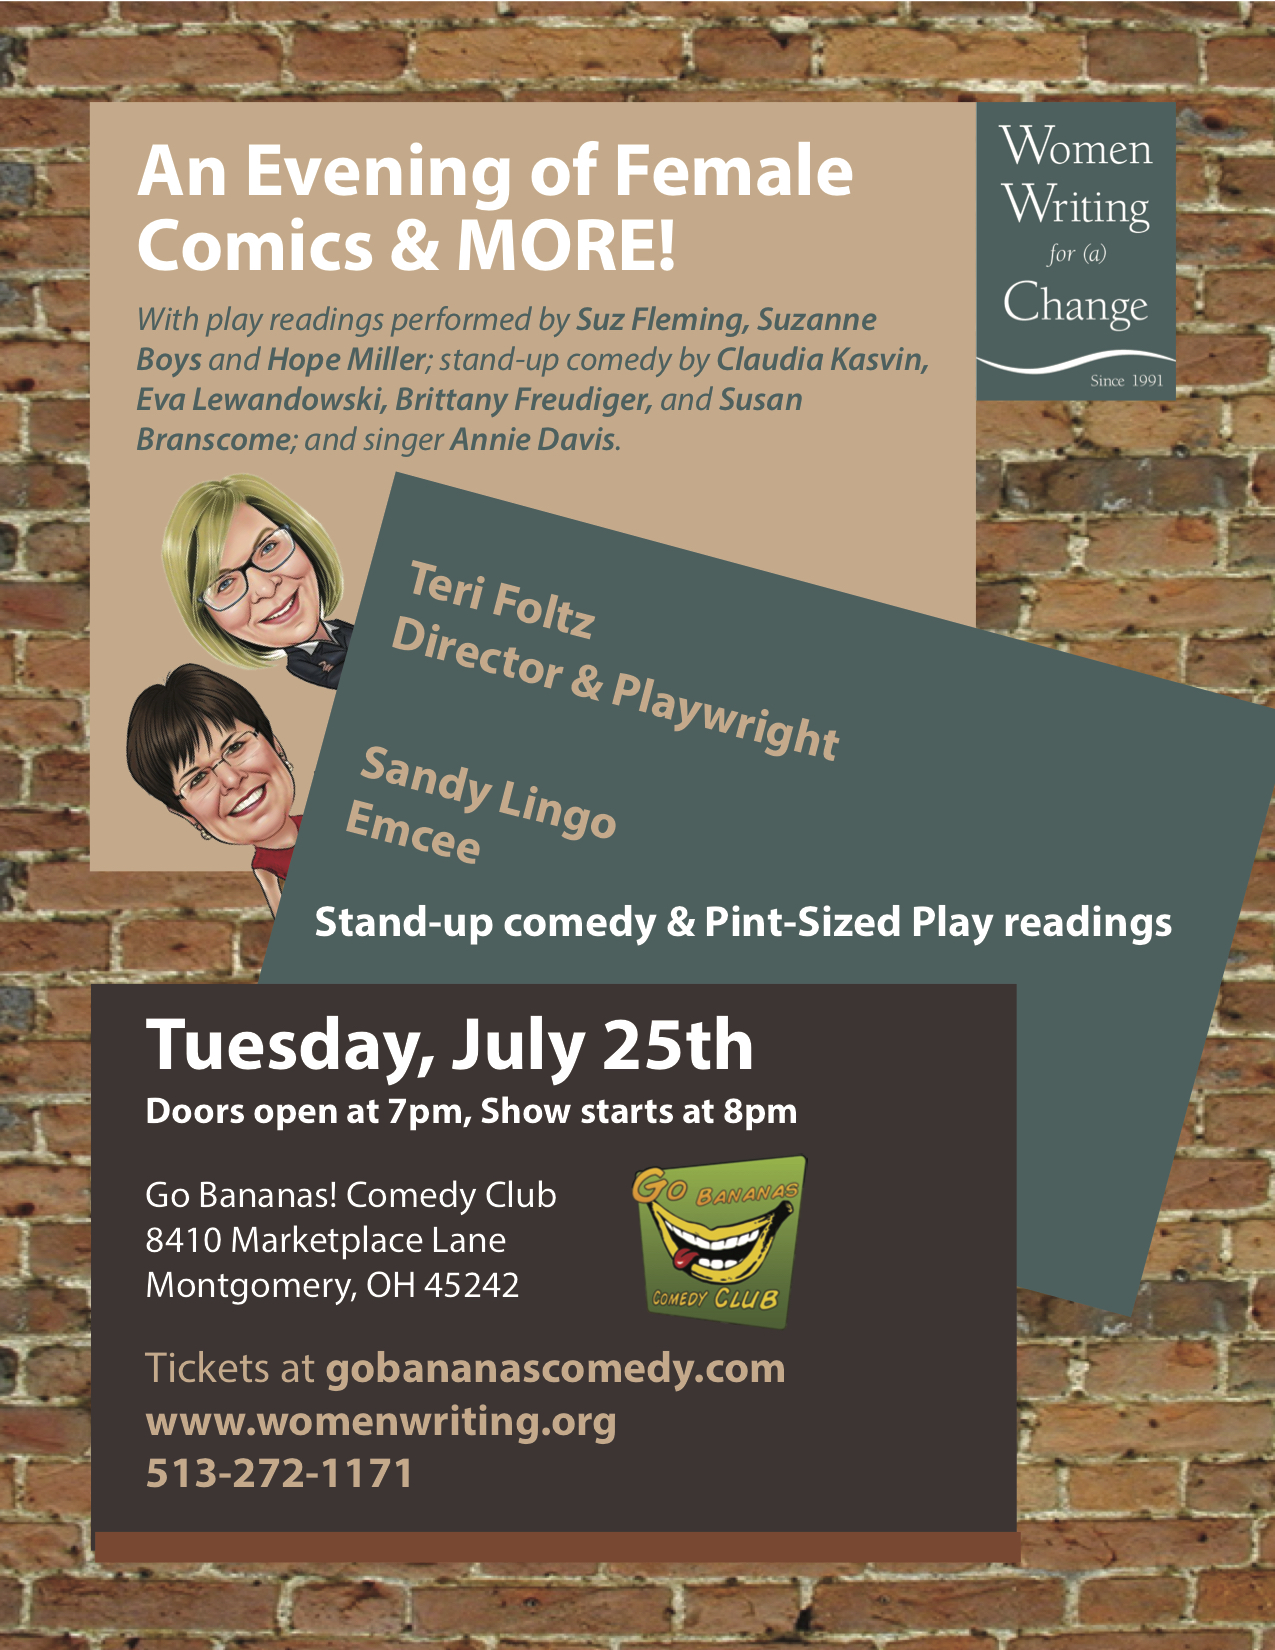 BWW Feature: AN EVENING OF FEMALE COMICS at Women Writing for a Change